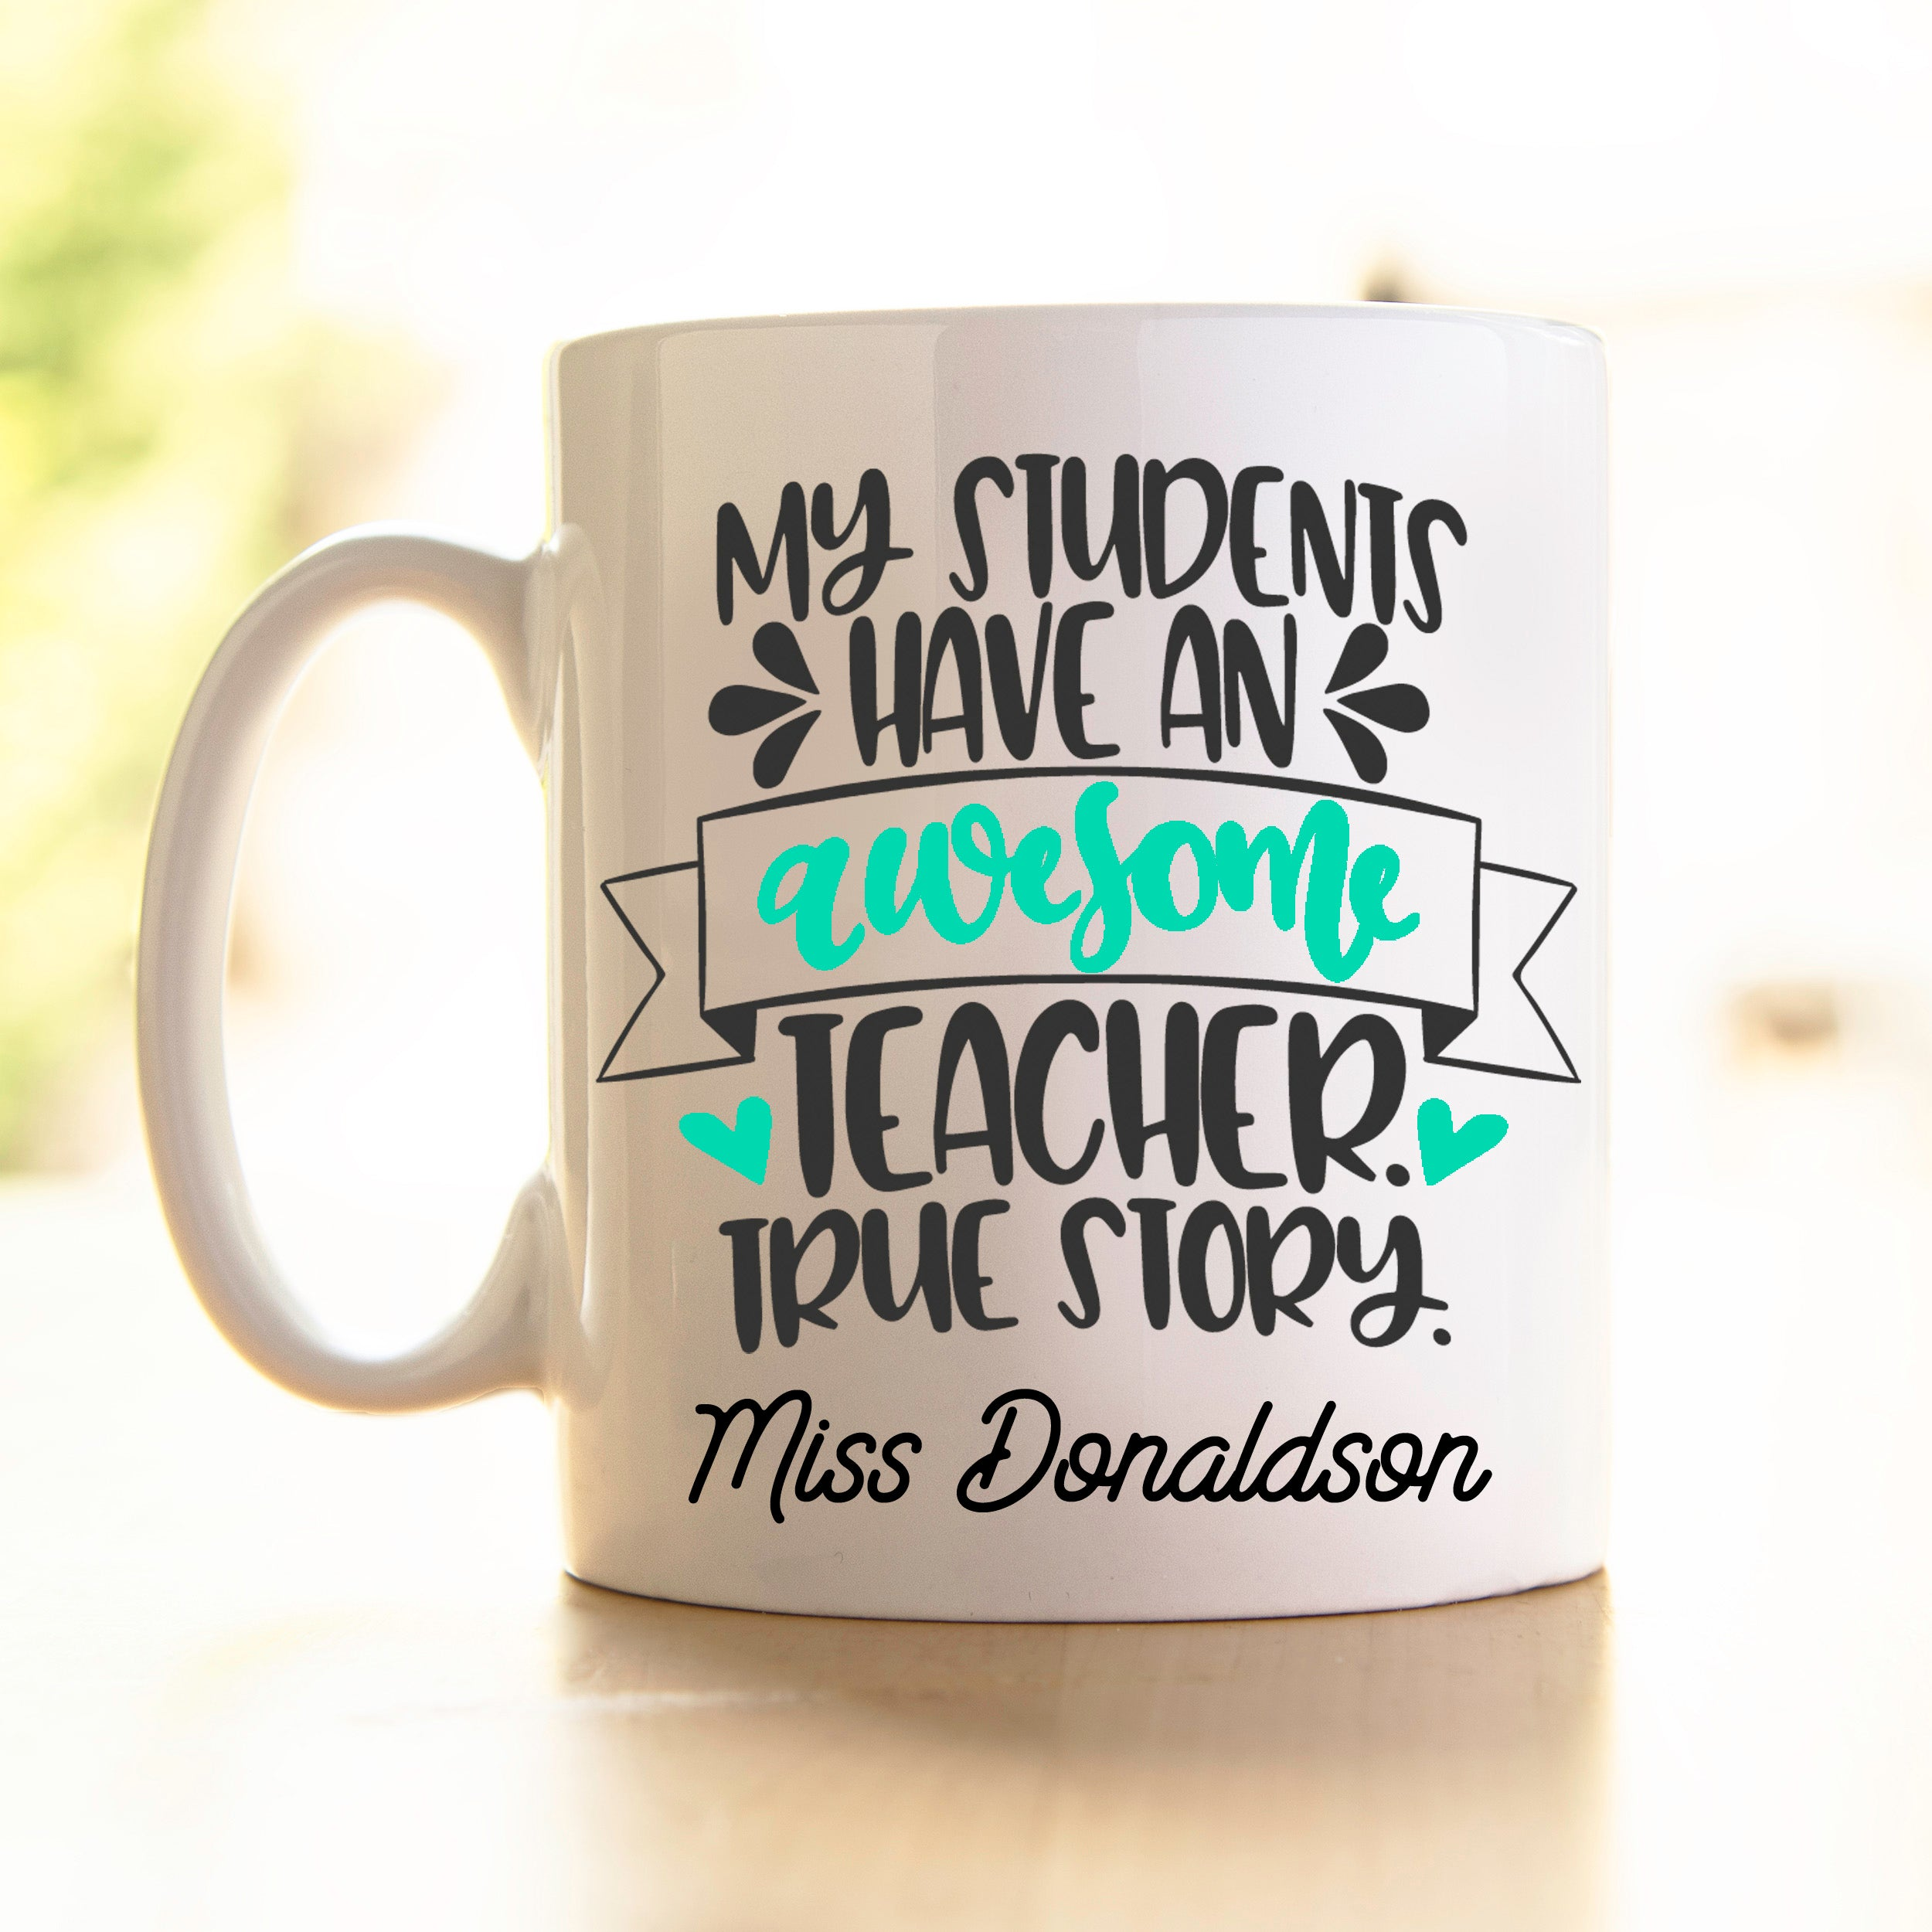 Teacher's Mug - awesome teacher